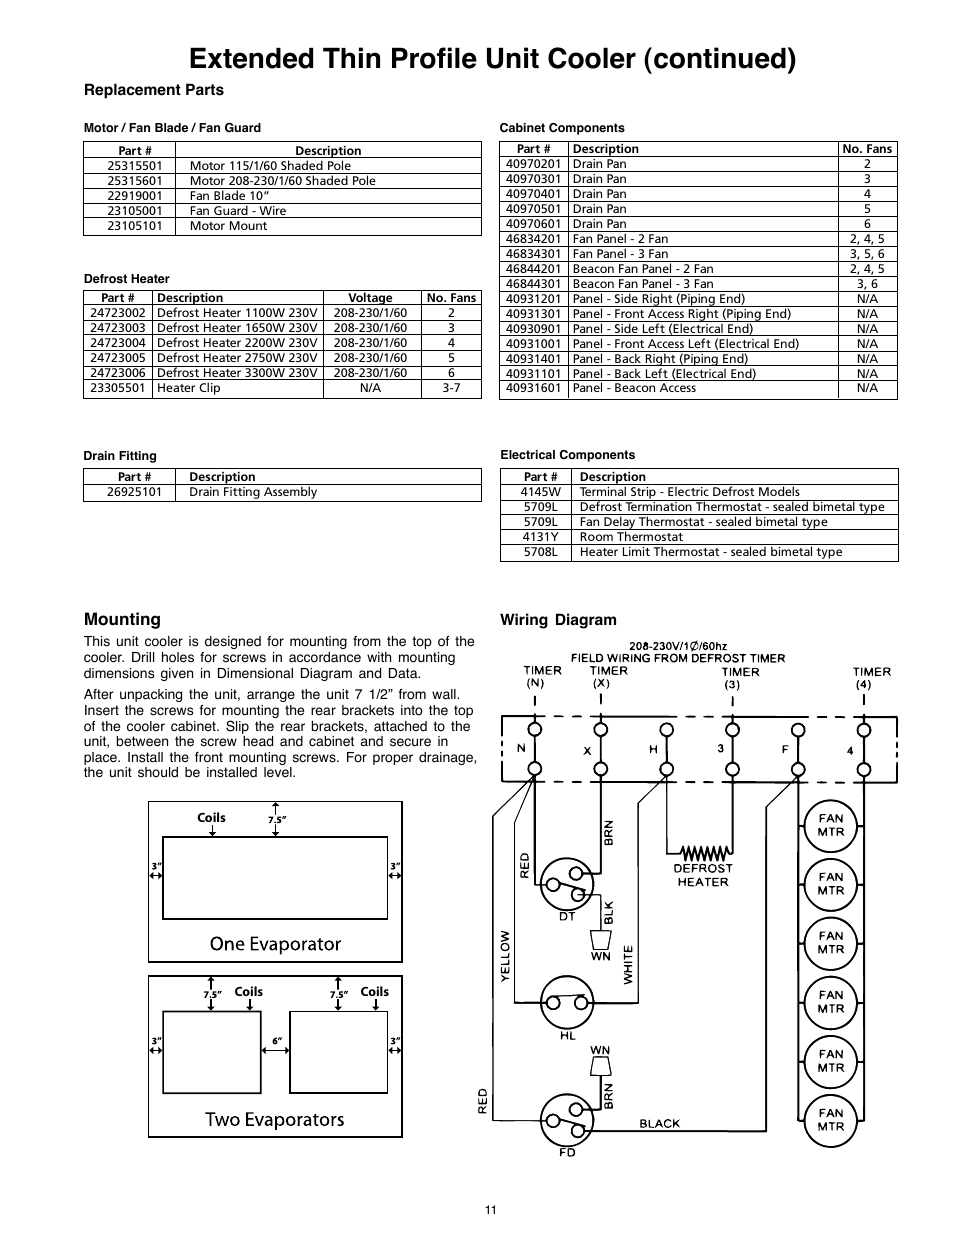 heatcraft refrigeration products 25005601 page11 extended thin profile unit cooler (continued), mounting heatcraft freezer wiring diagram at bayanpartner.co